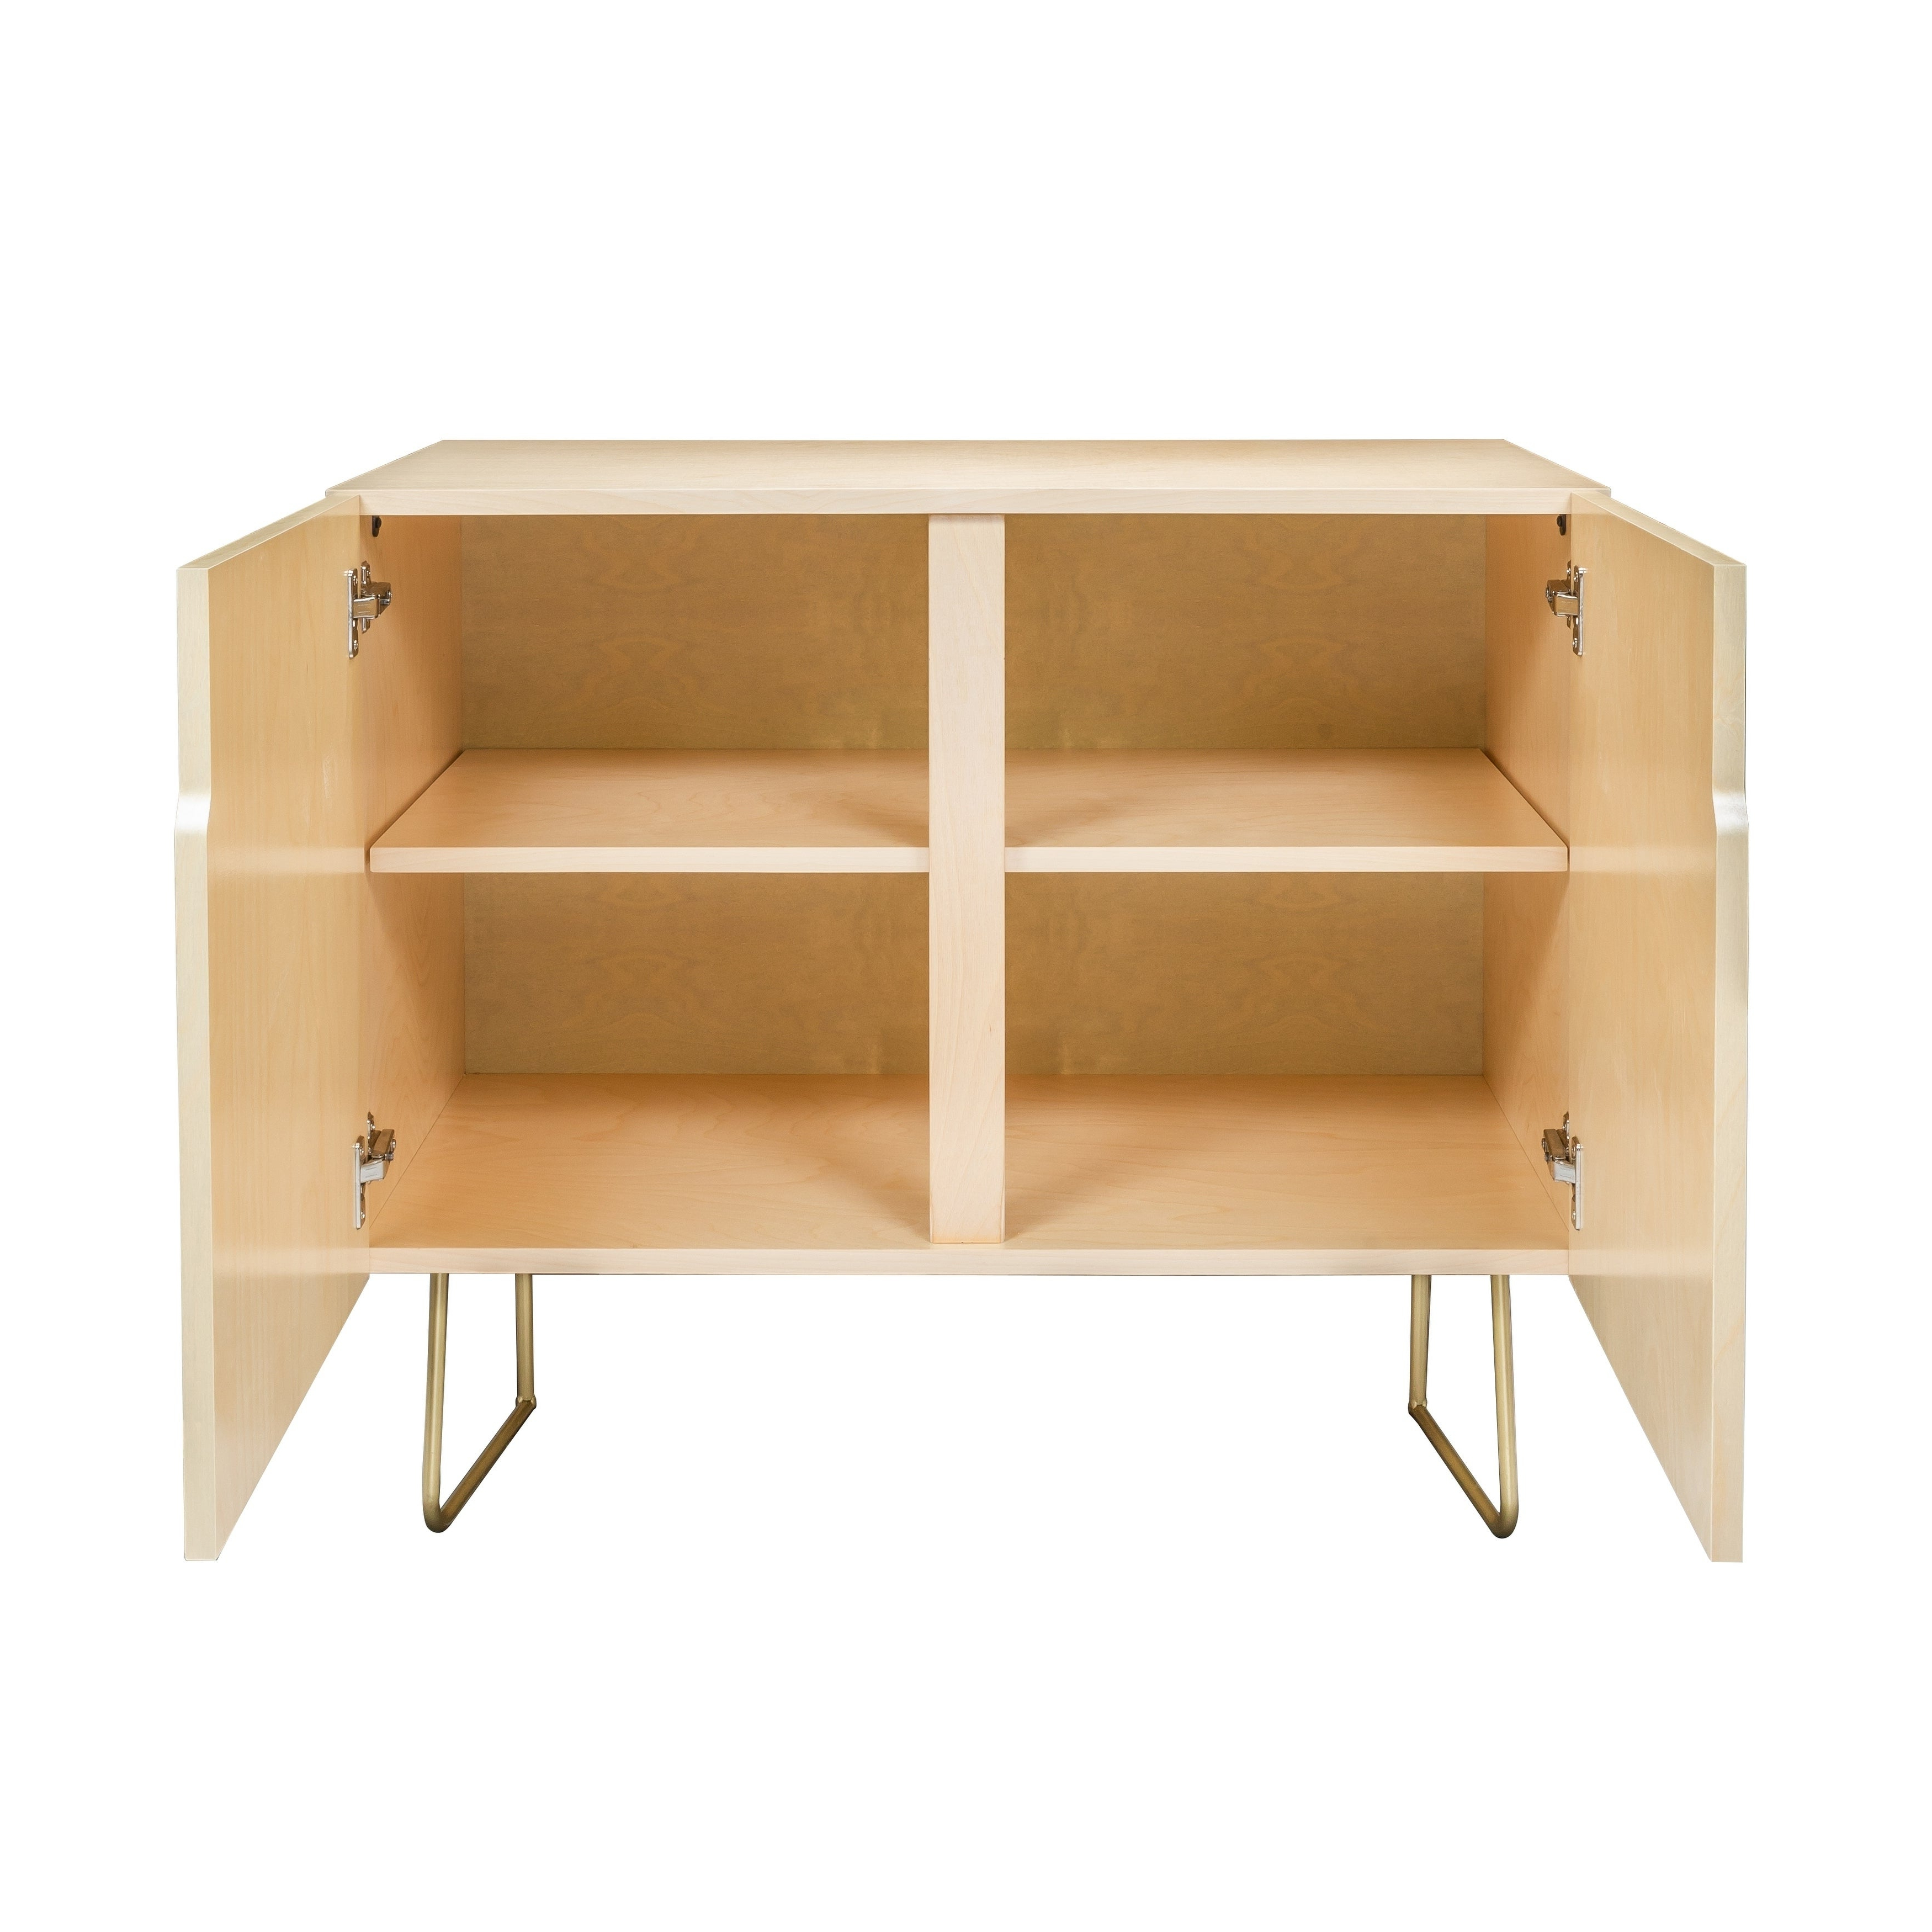 Deny Designs Colorful Leaves Credenza (Birch Or Walnut, 2 Leg Options) For Colorful Leaves Credenzas (View 7 of 20)